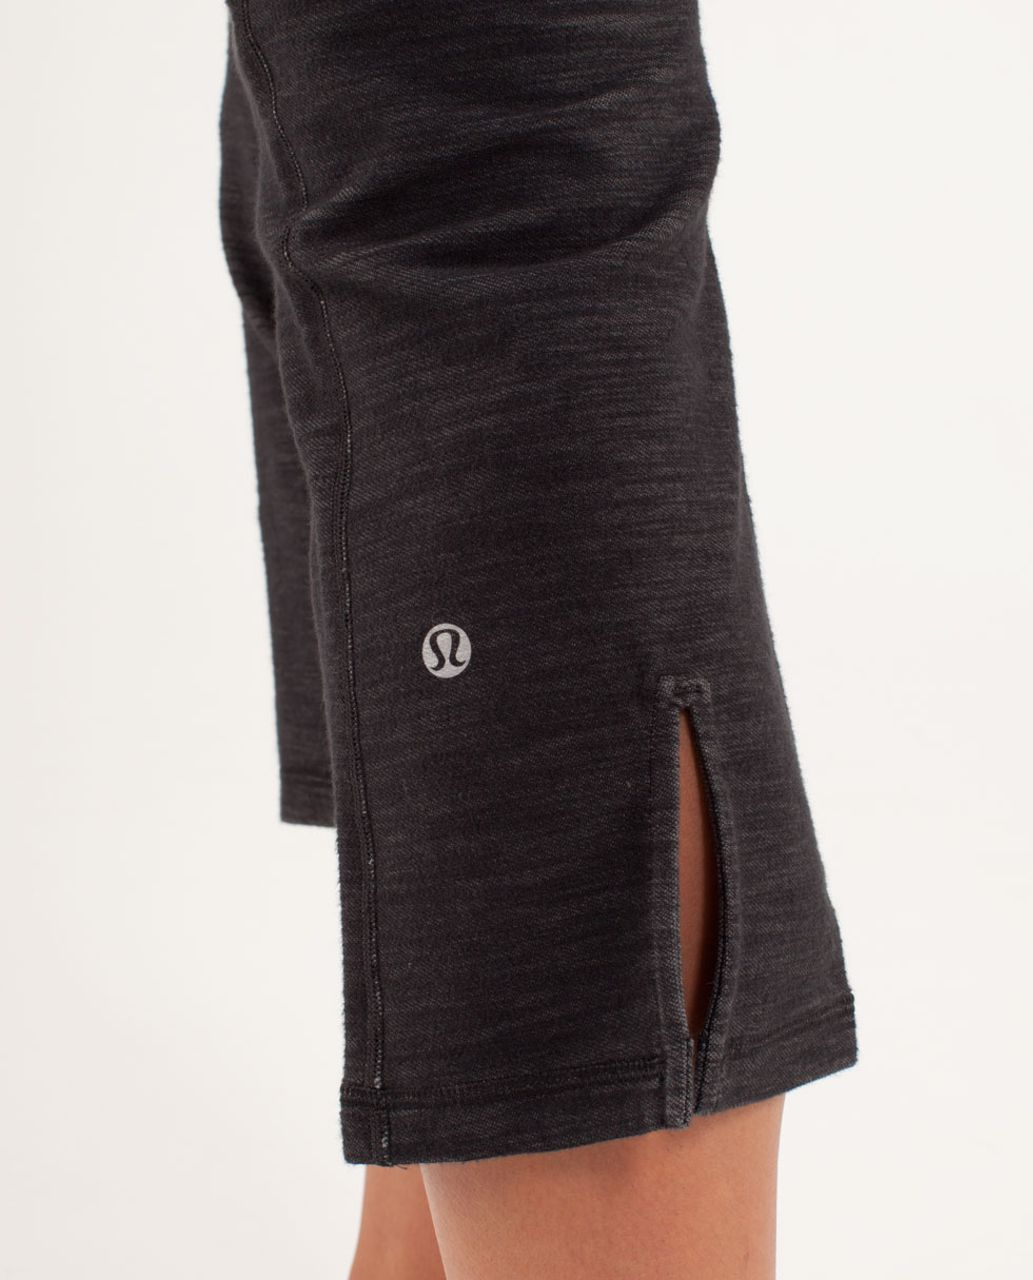 Lululemon Gather & Crow Crop *Denim - Black Slub Denim / Tonka Stripe Split Pea / Heathered Split Pea / Heathered Split Pea